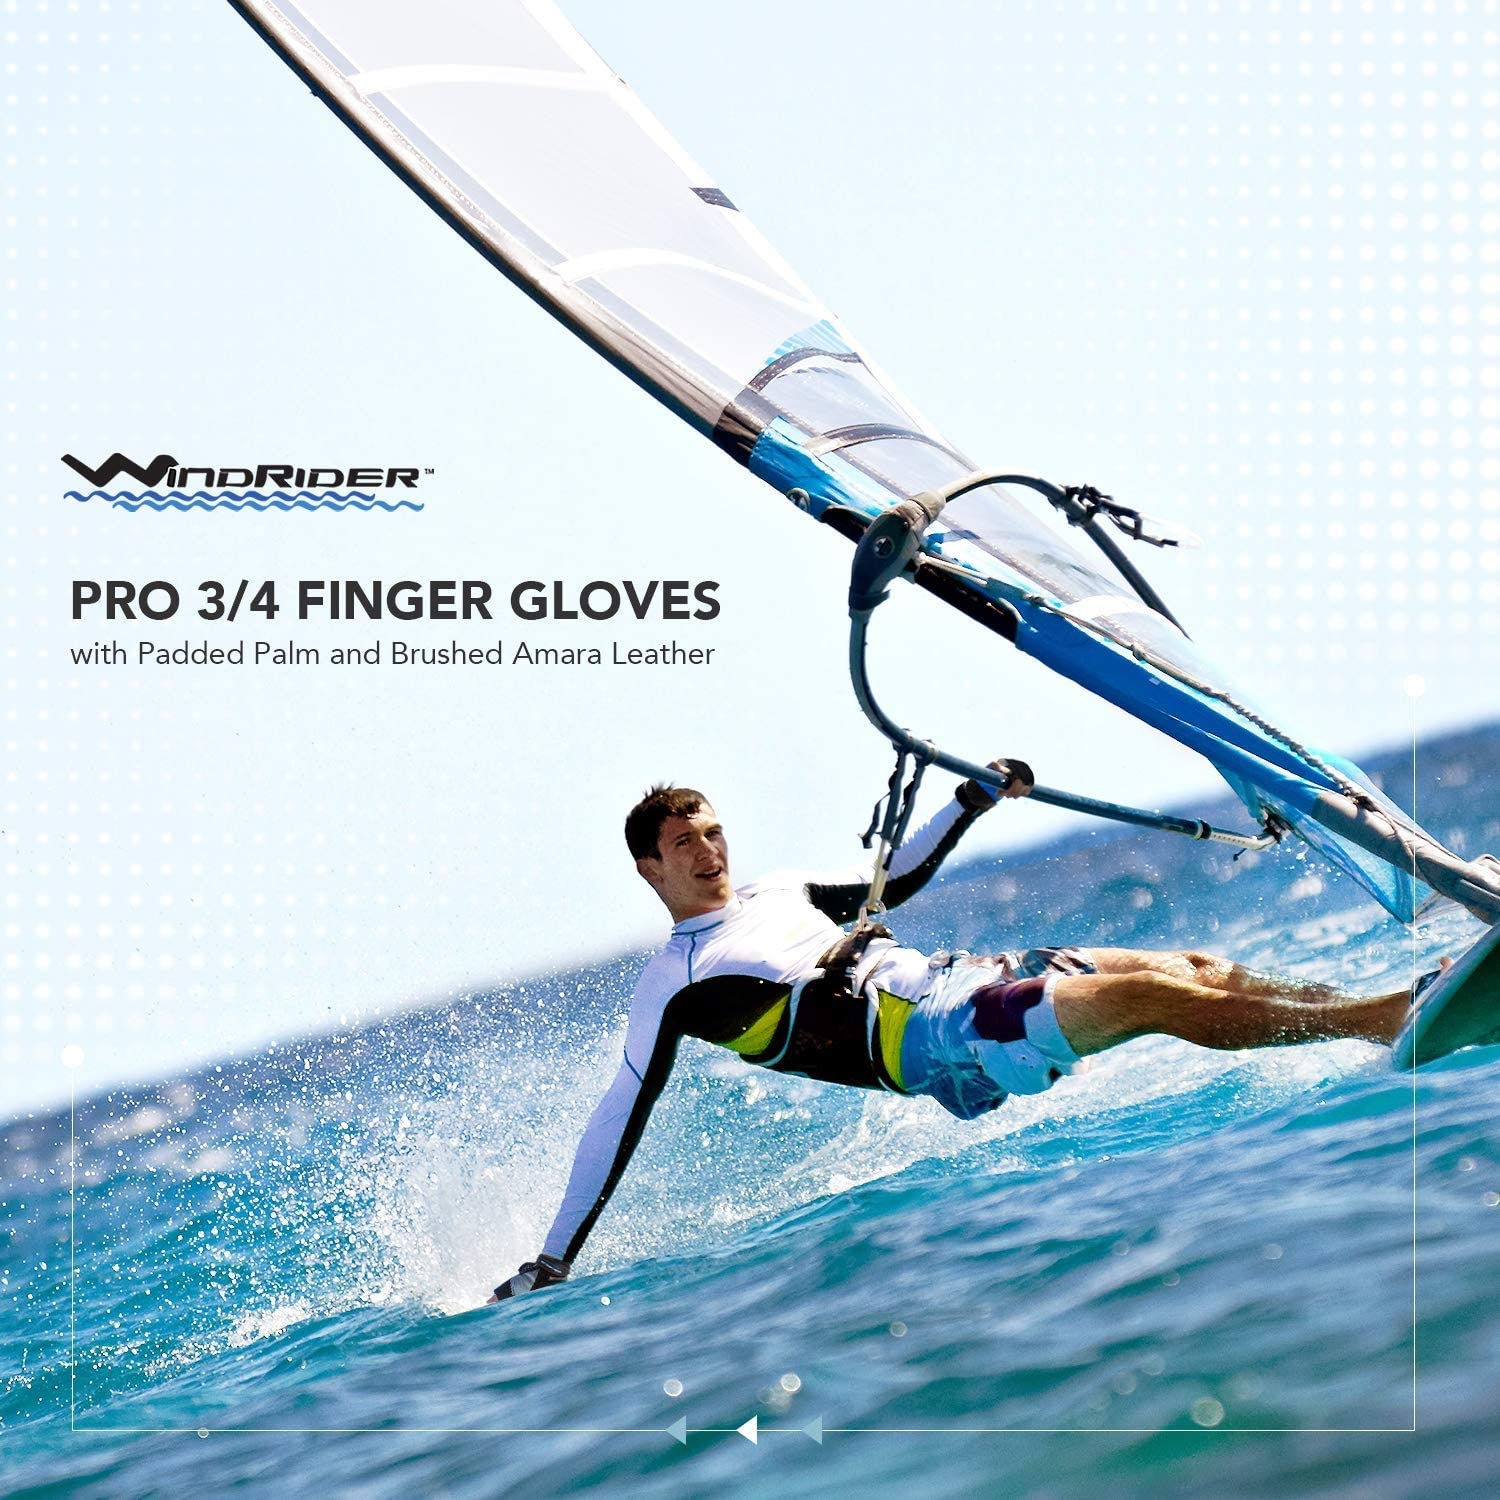 Mesh Back for Comfort Padded Palm and Amara Reinforcement WindRider Pro Sailing Gloves Canoeing or SUP Women and Kids Perfect for Sailing 3//4 or Full Finger Renewed Sizes for Men Paddling